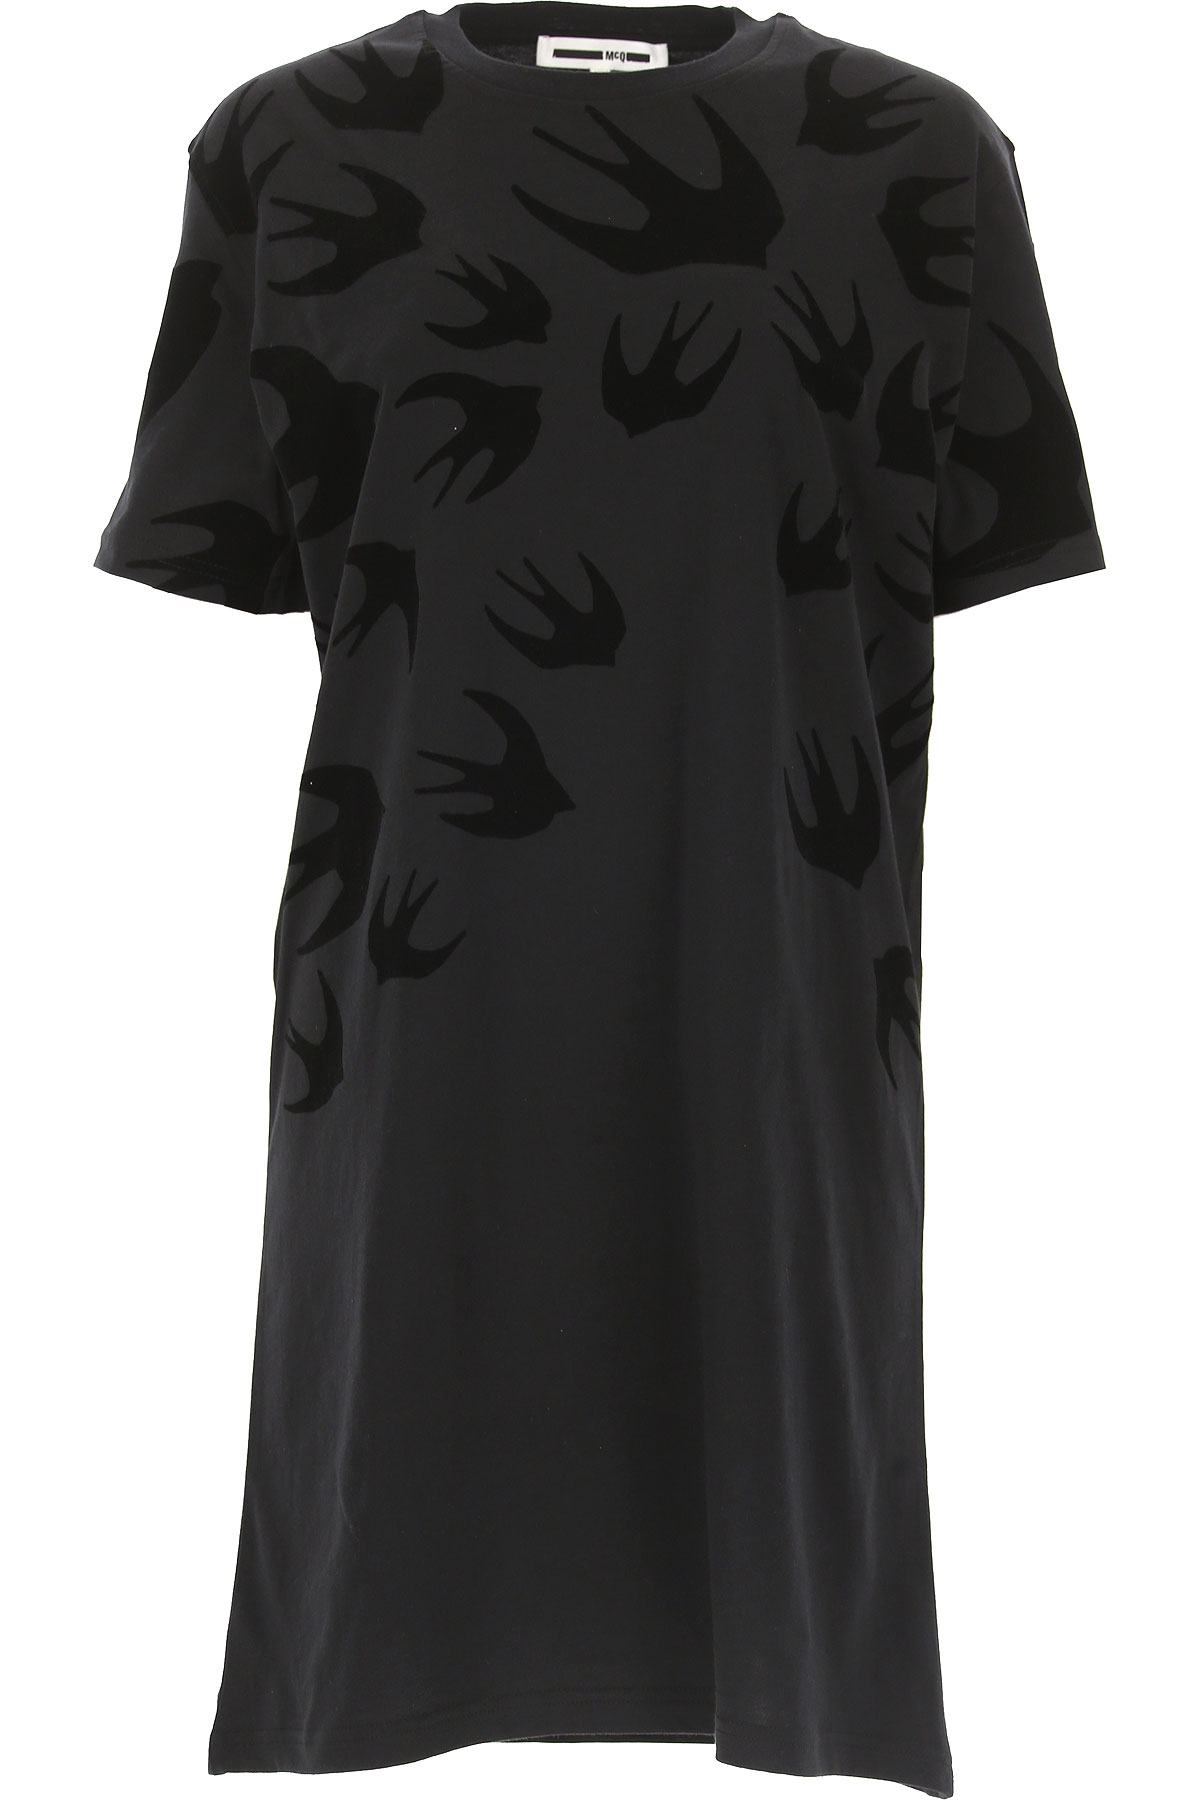 Alexander McQueen McQ Dress for Women, Evening Cocktail Party On Sale, Black, Cotton, 2019, 2 4 6